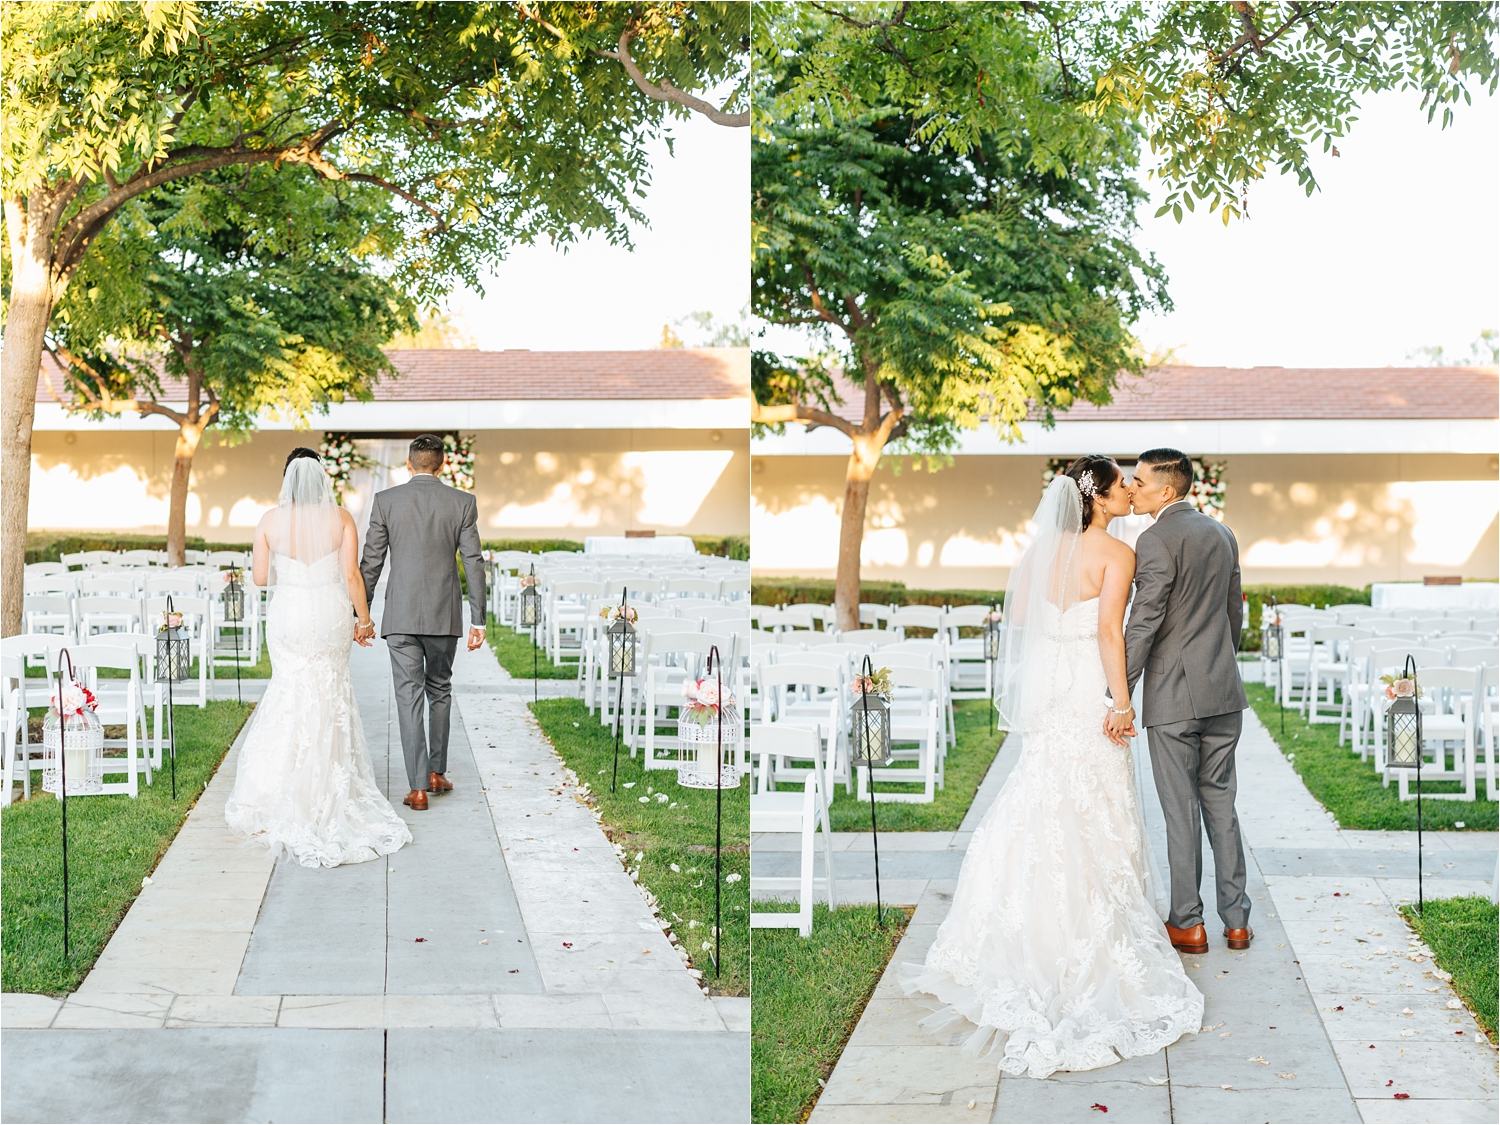 Bride and Groom Walking - California Wedding Photos - https://brittneyhannonphotography.com